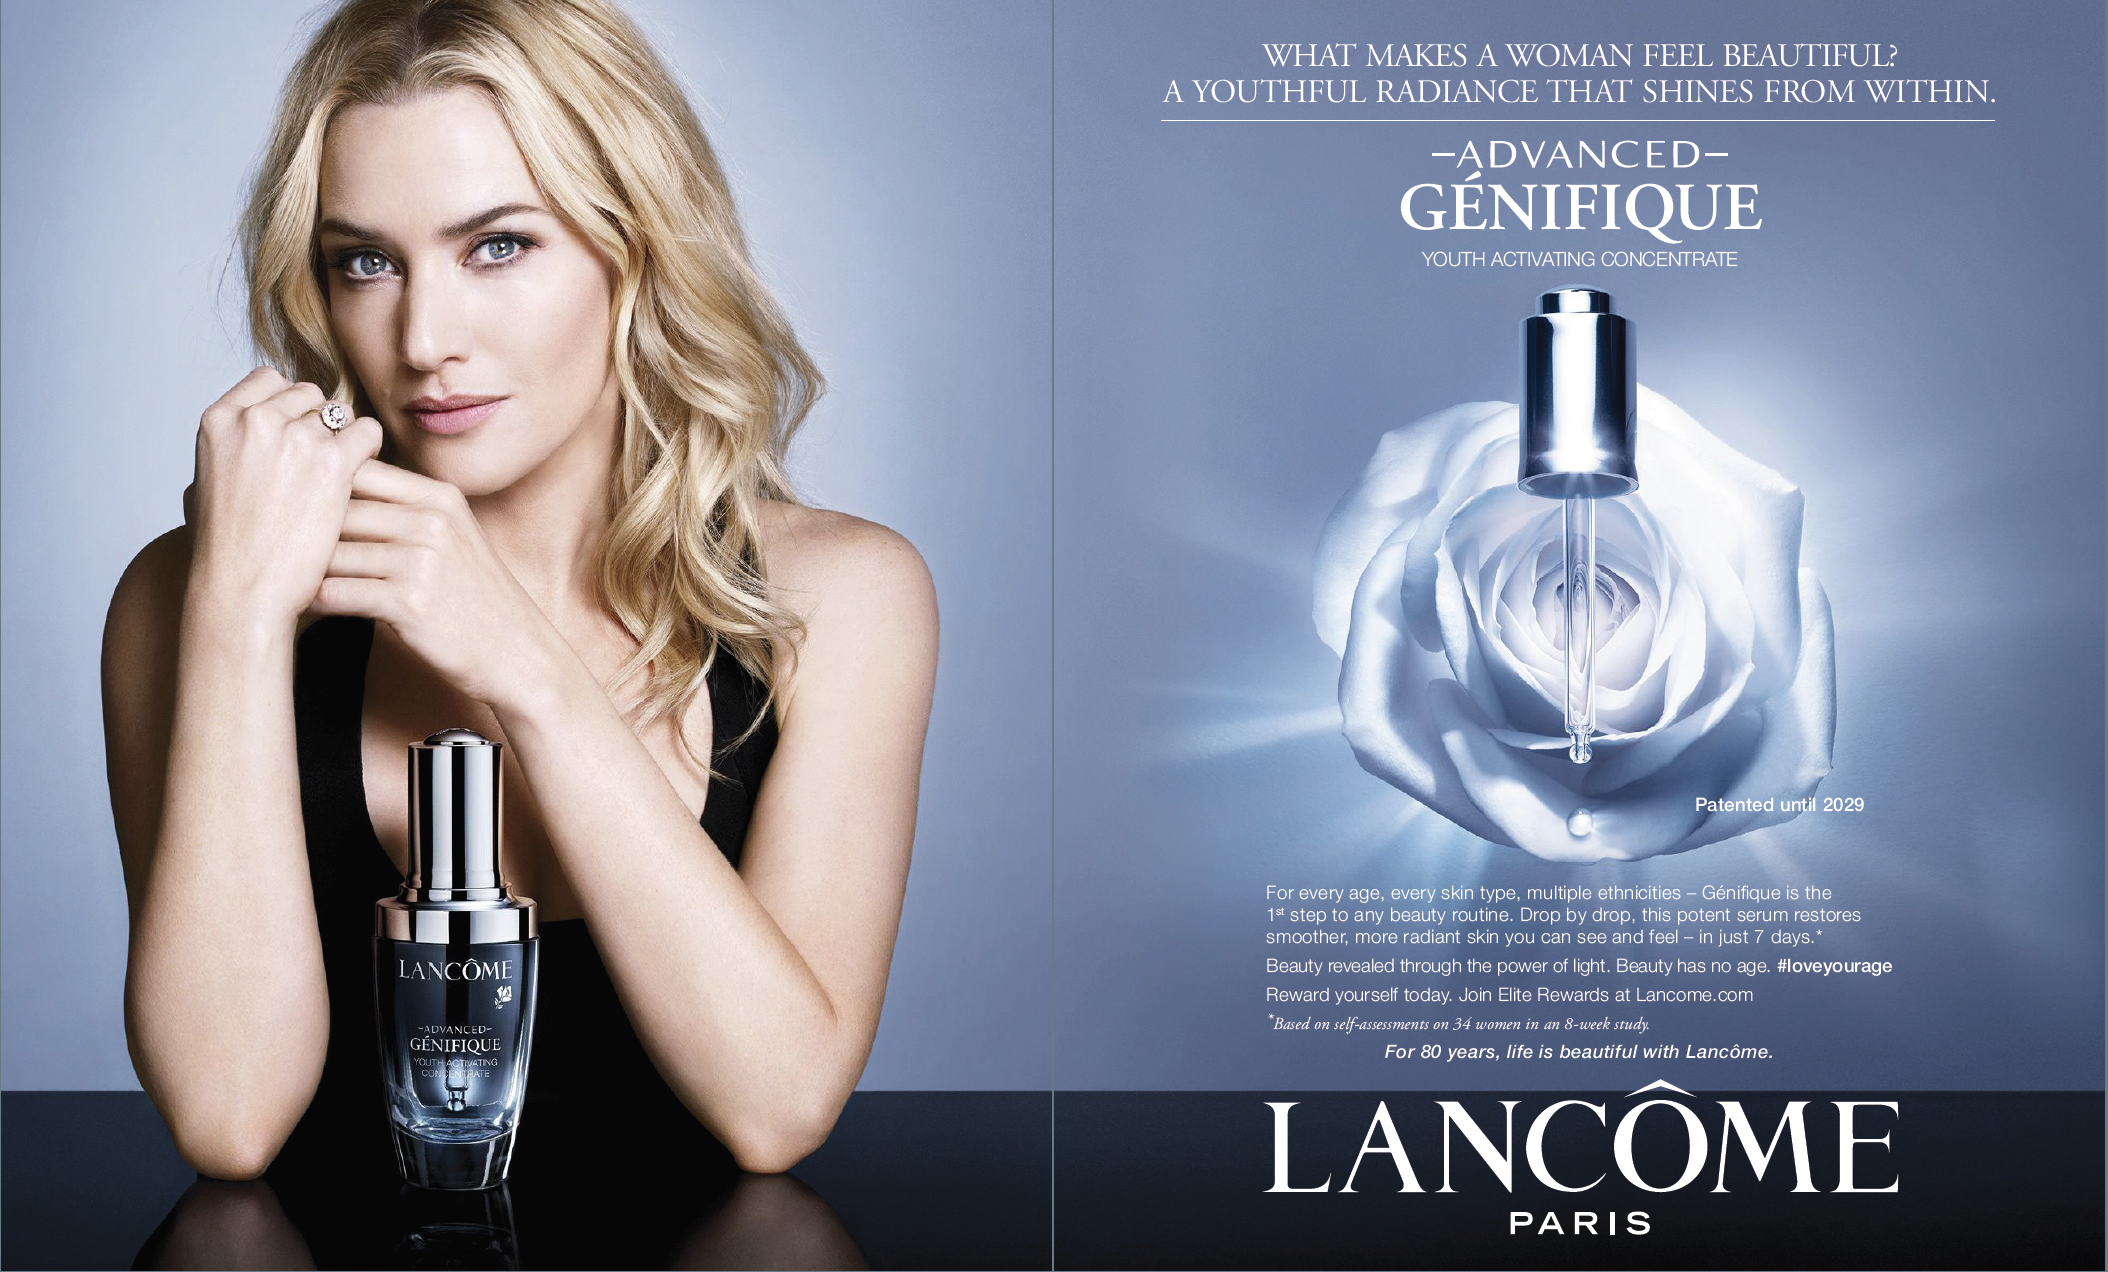 Lancome Advance Génefique adv   Ad s   Current Cosmetic ... 4cdec2d8a84